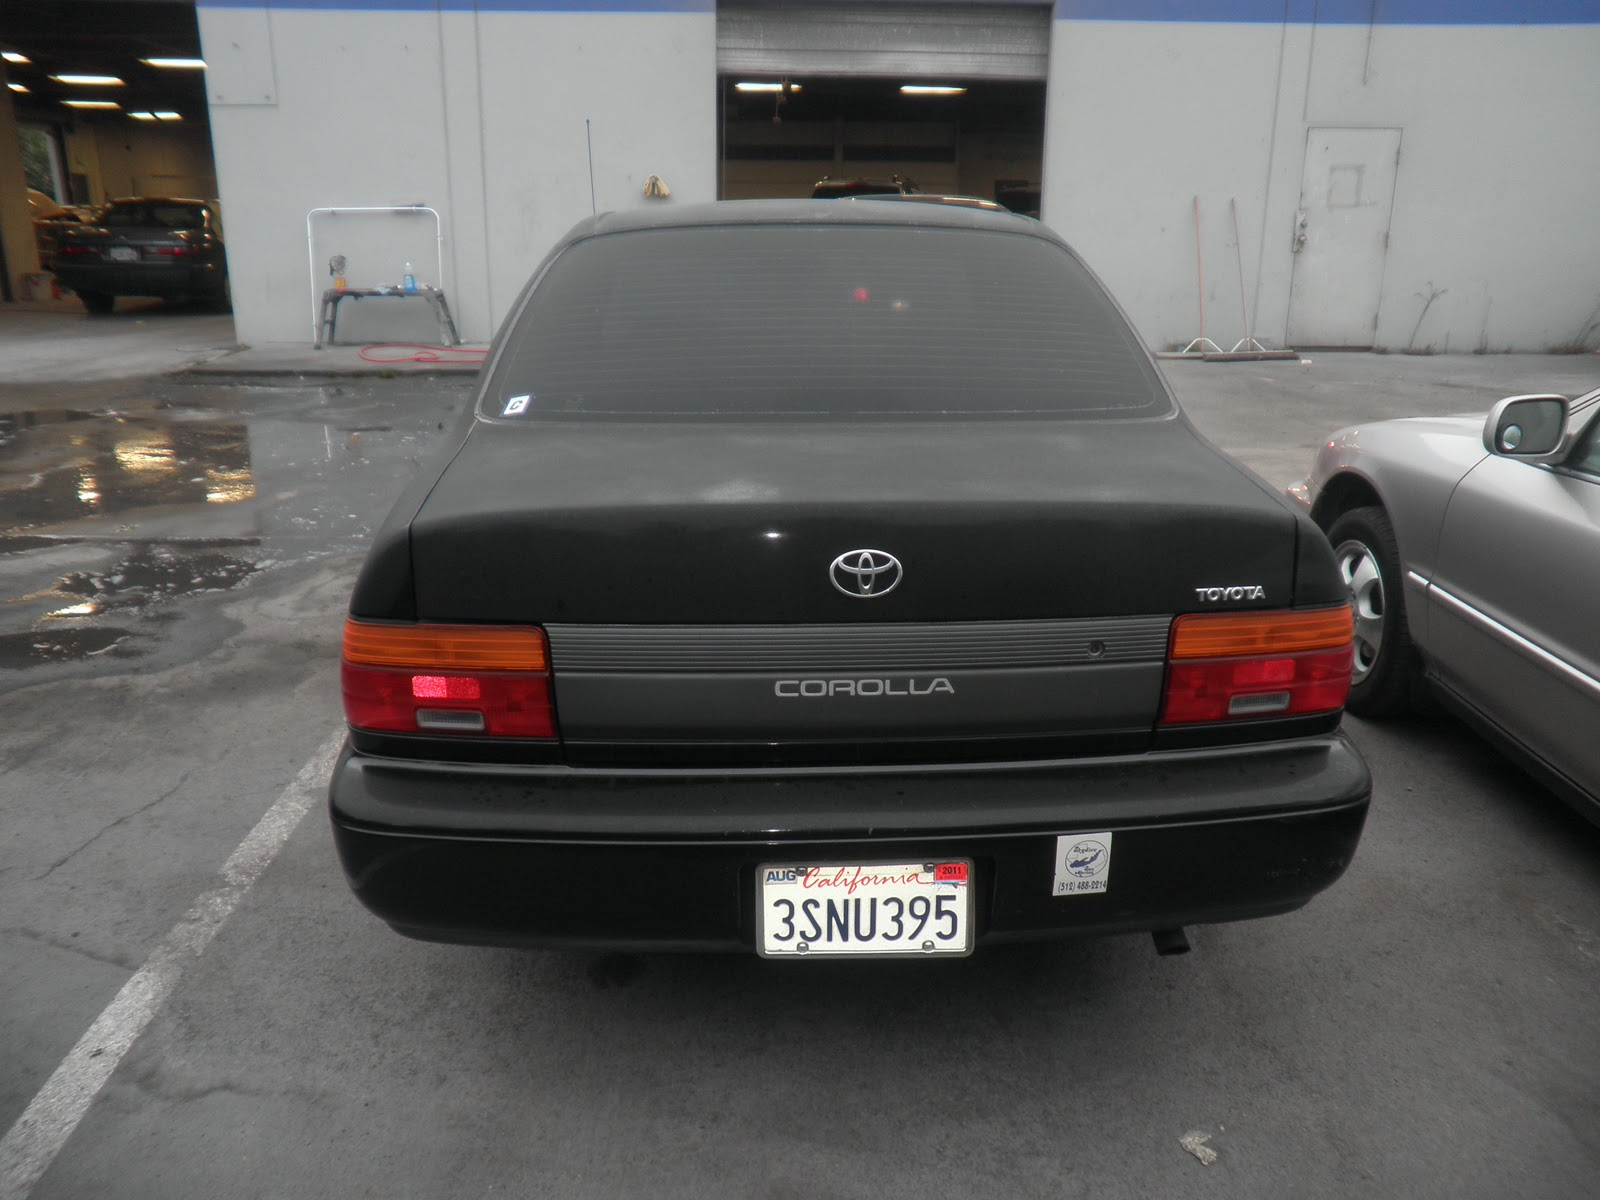 Fremont Toyota Service >> Auto Body-Collision Repair-Car Paint in Fremont-Hayward-Union City-San Francisco Bay: Car of the ...